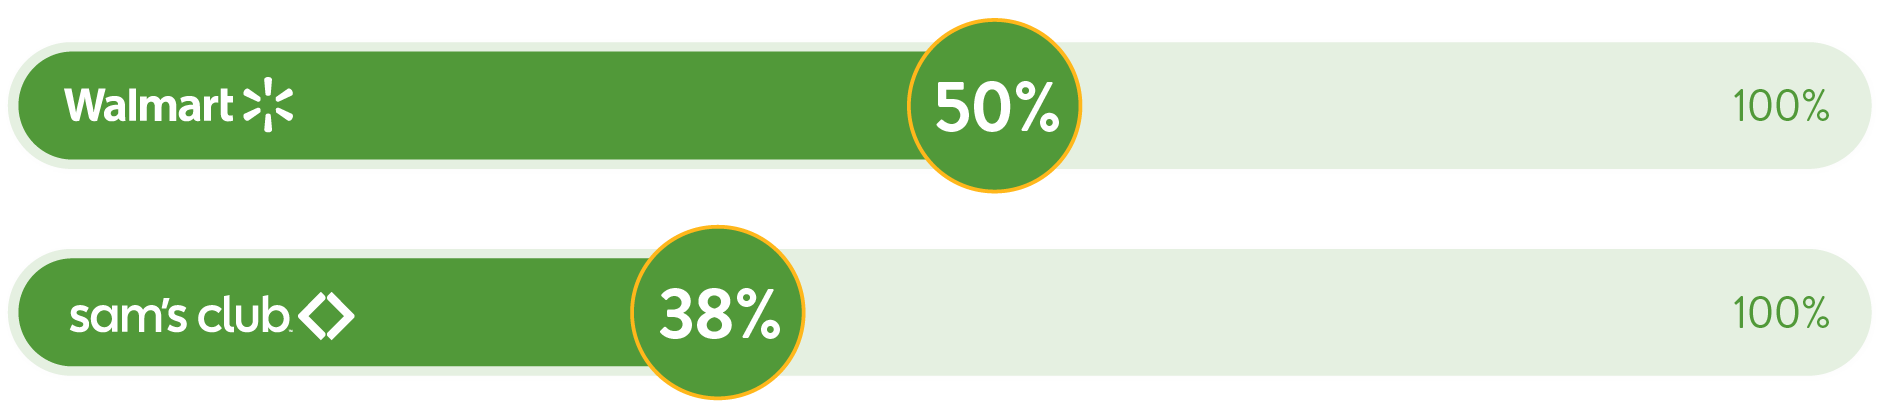 Sustainable Packaging Progress Walmart 50% and Sam's Club 38% Graphic